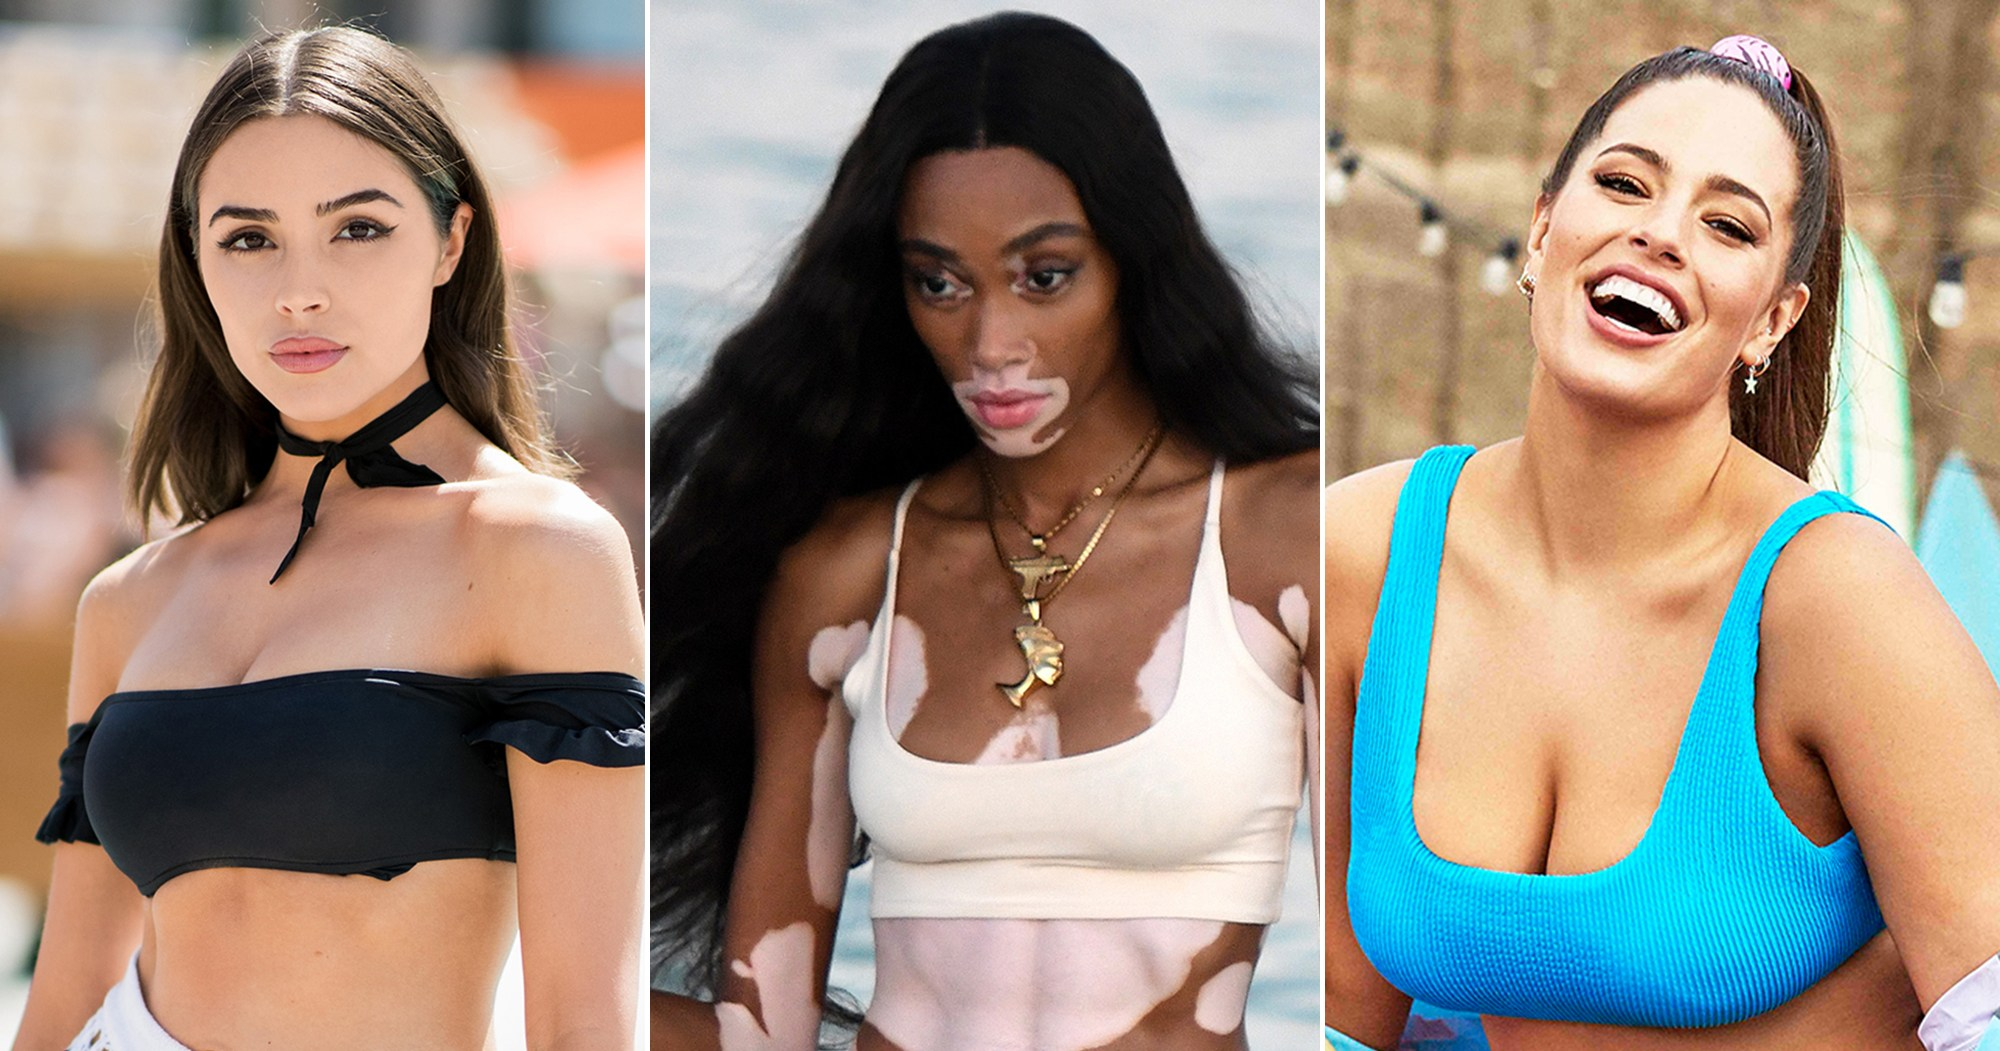 How to Get Bikini-Ready Fast: Tips and Tricks From the Hottest Models in the World